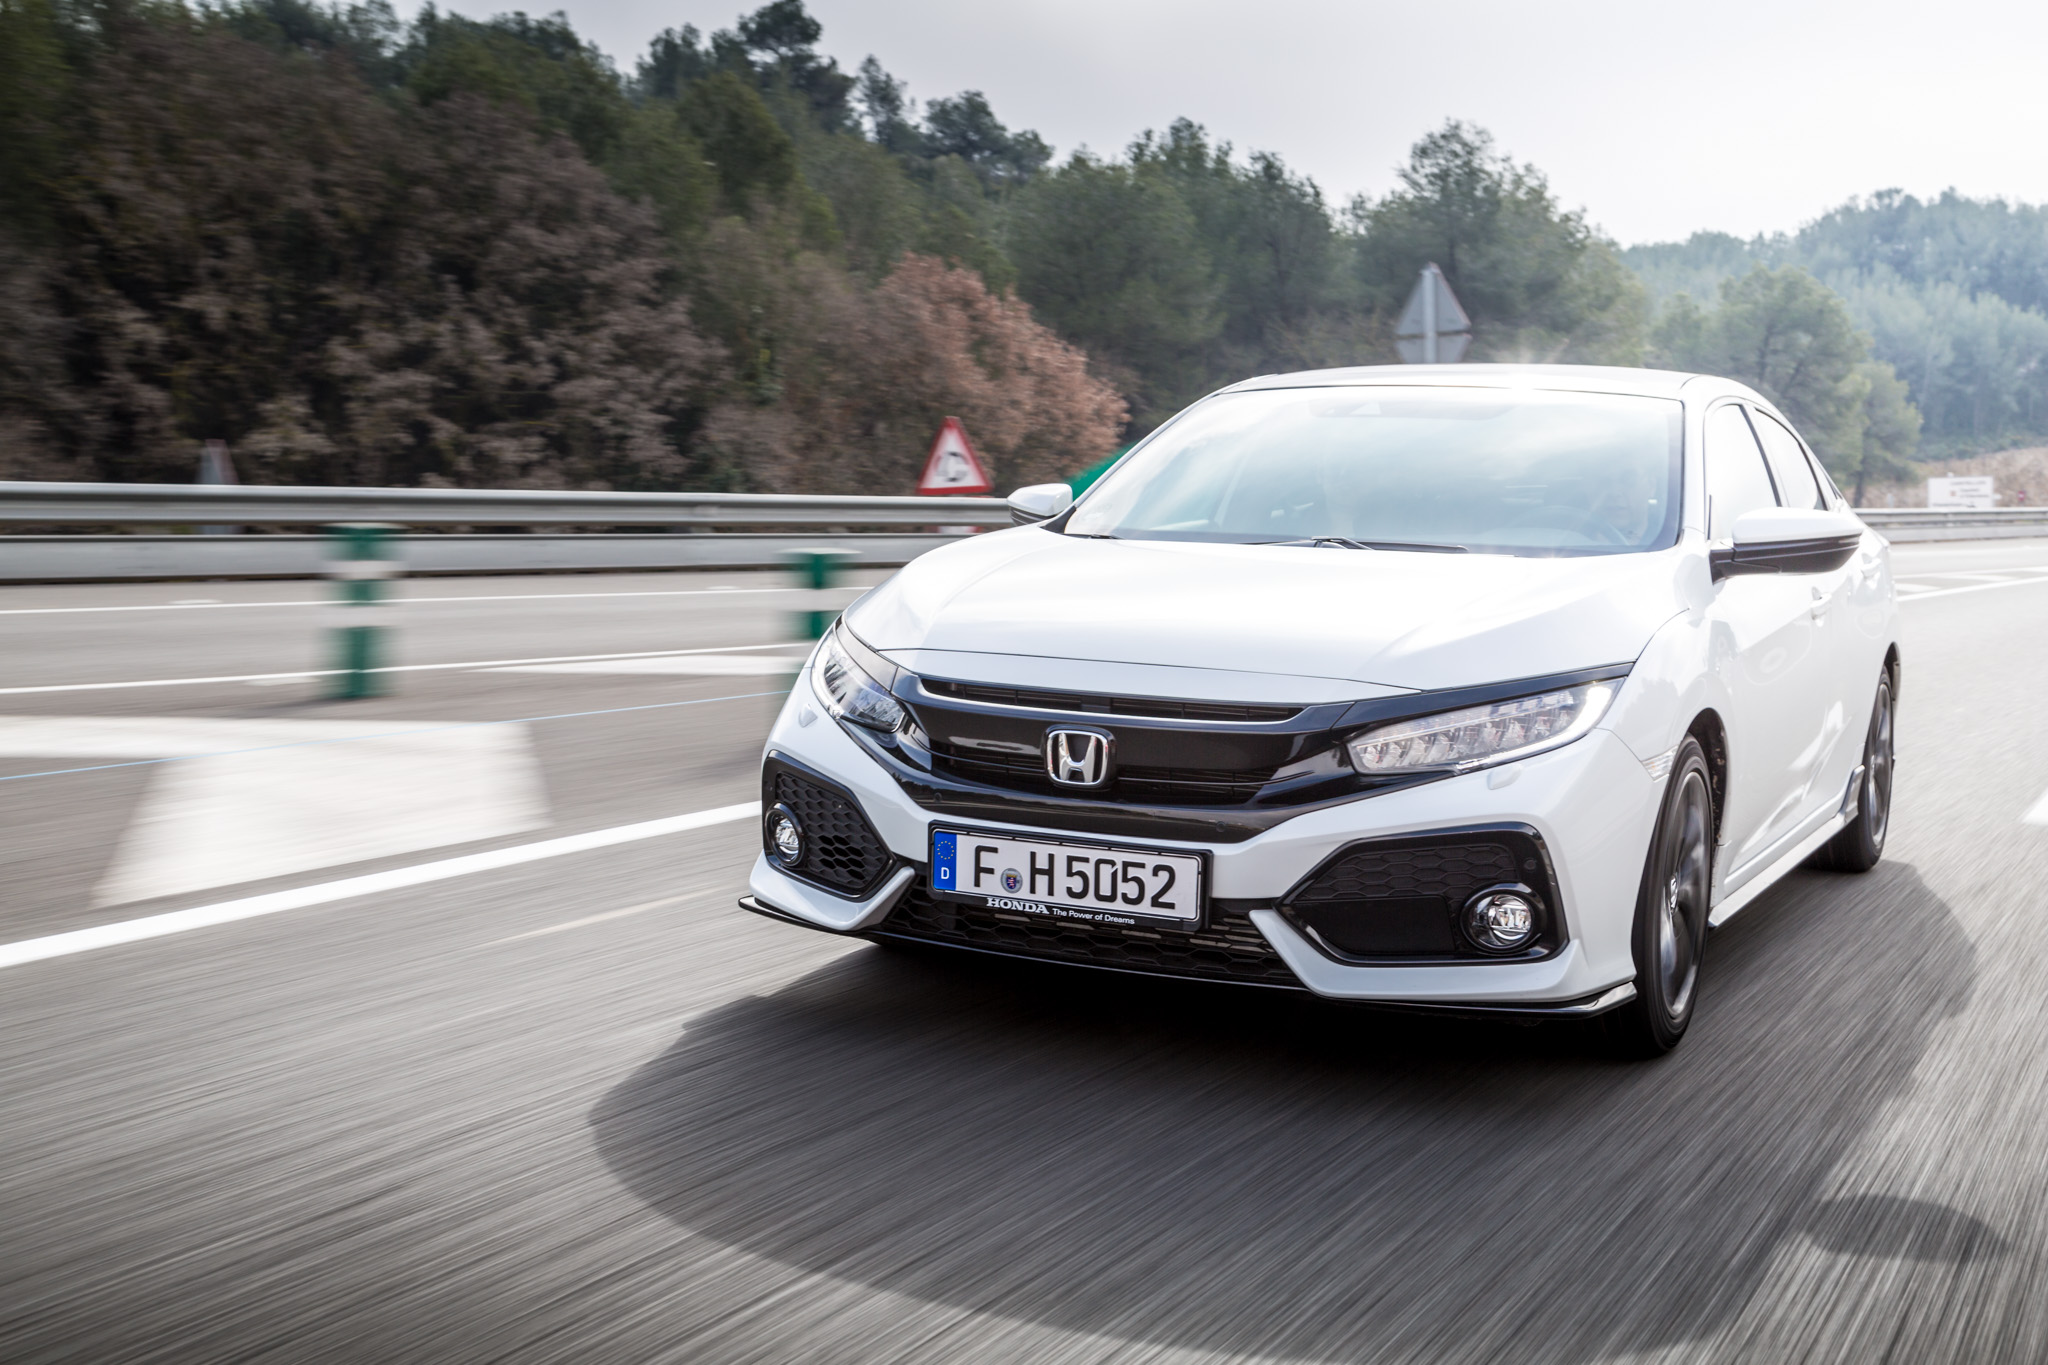 2017 Honda Civic Sport Plus Review - 10th Generation - The Best Yet